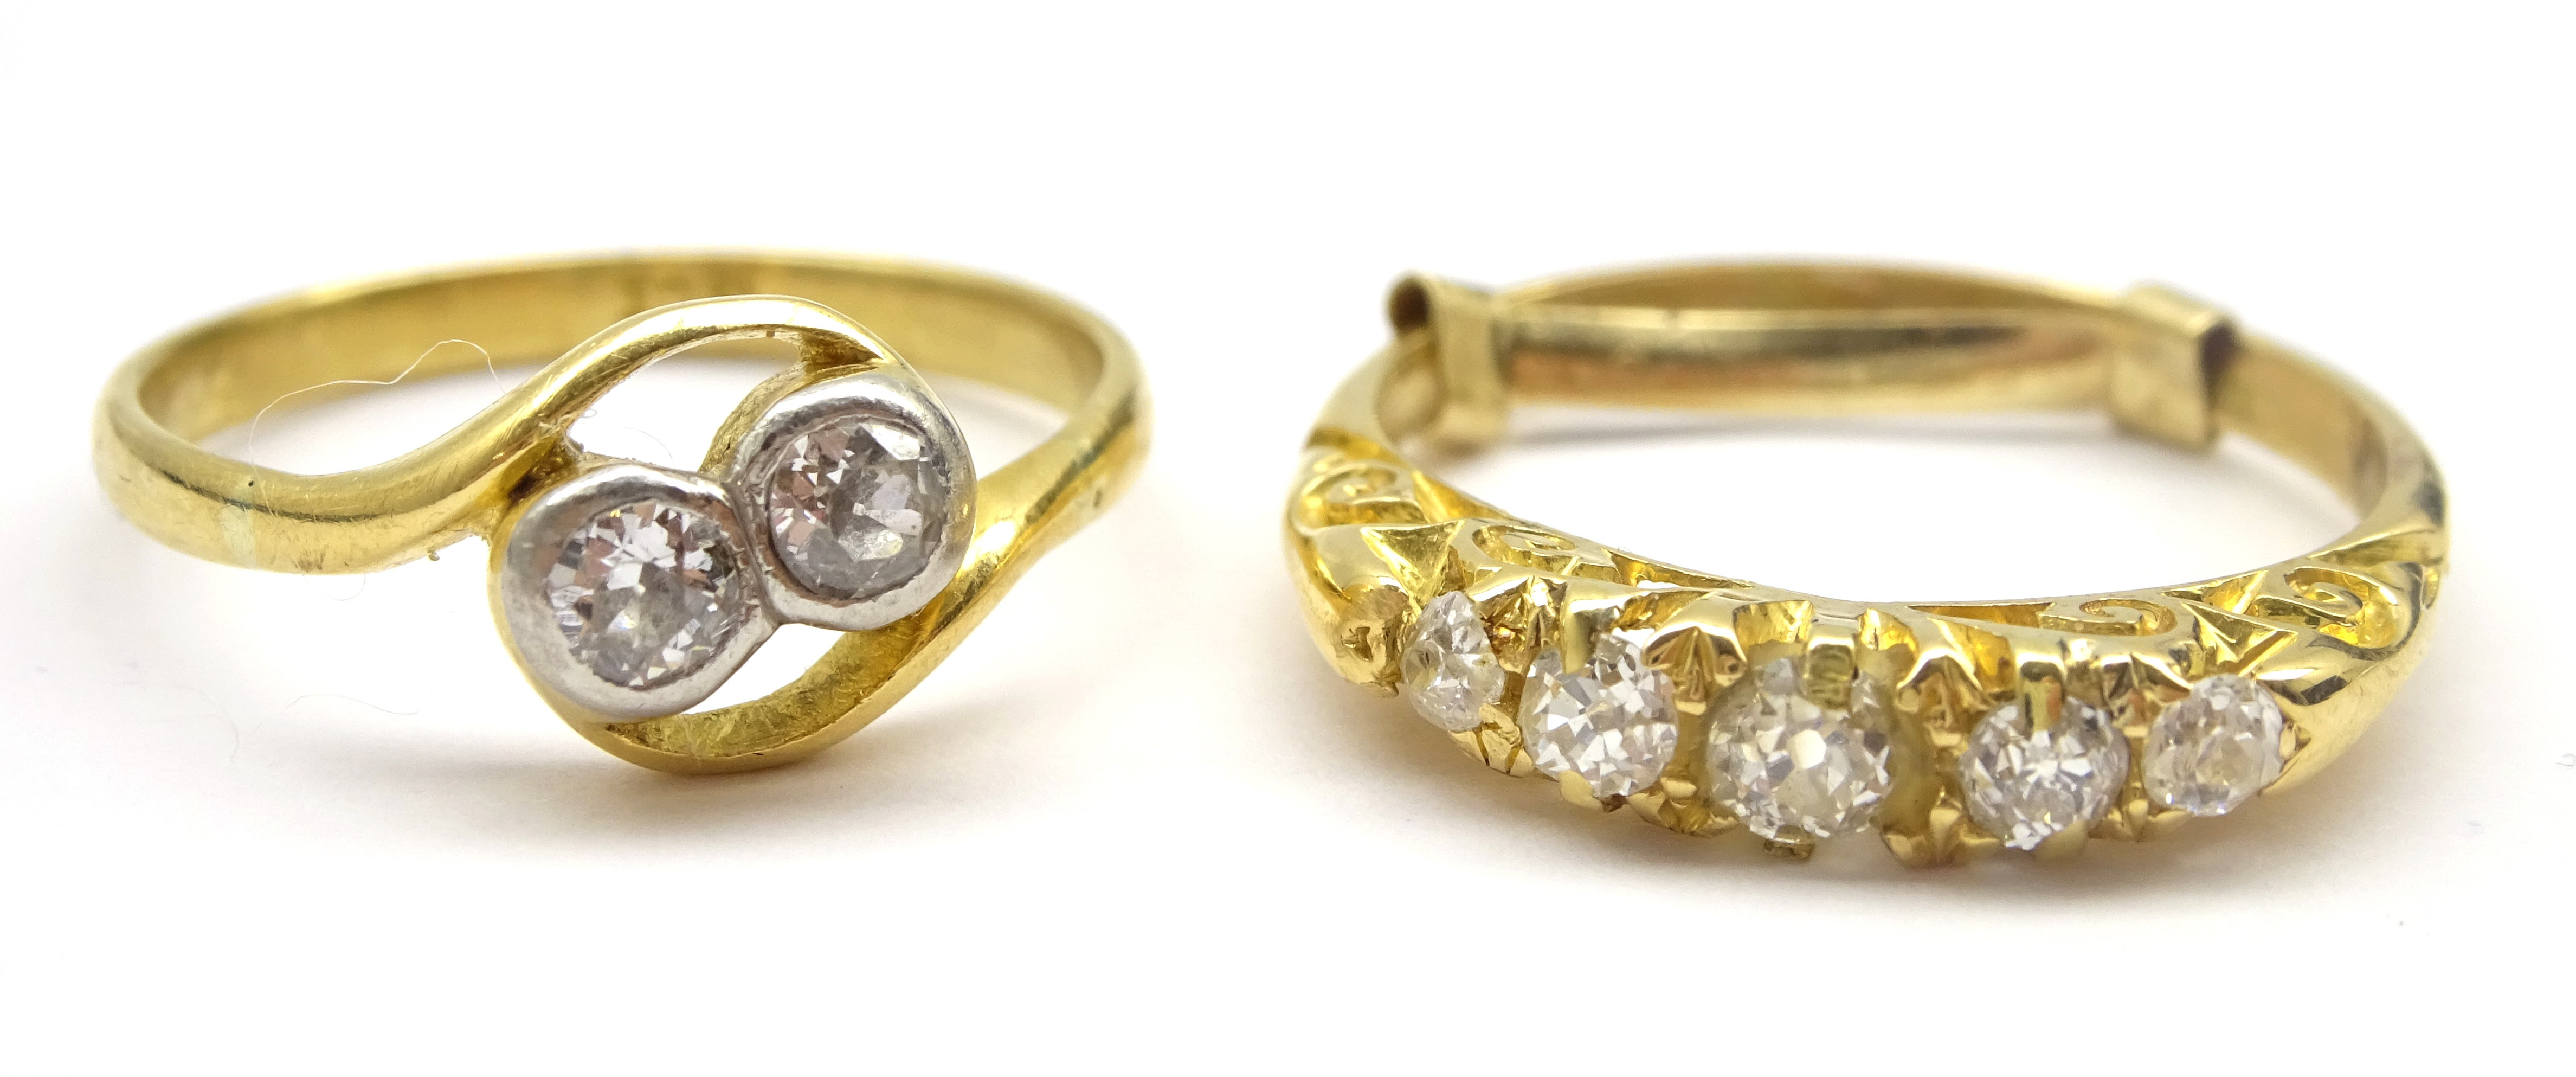 Lot 1028 - Gold early 20th century five stone diamond ring and a gold two stone crossover ring,